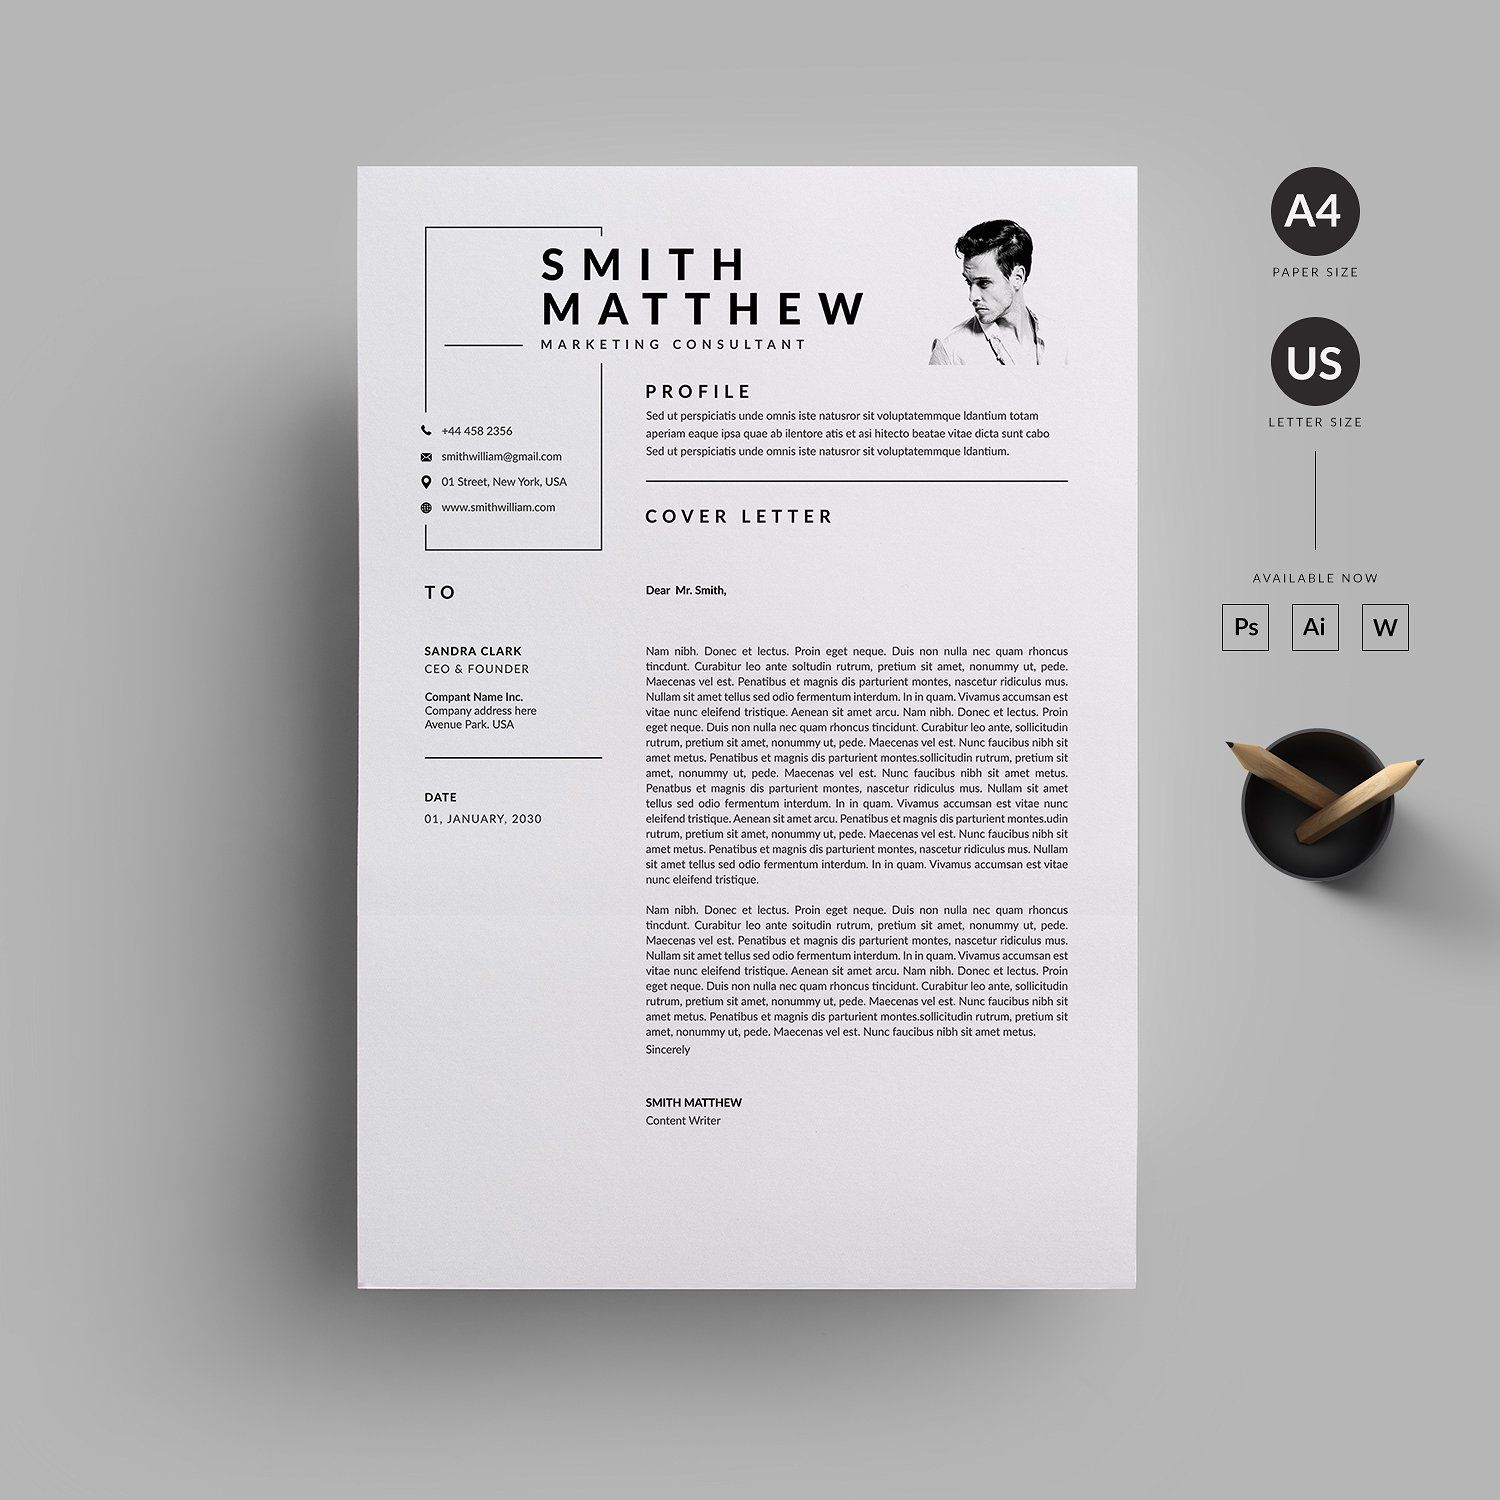 Resume/CV #Inch#Paper#Size#Bleed